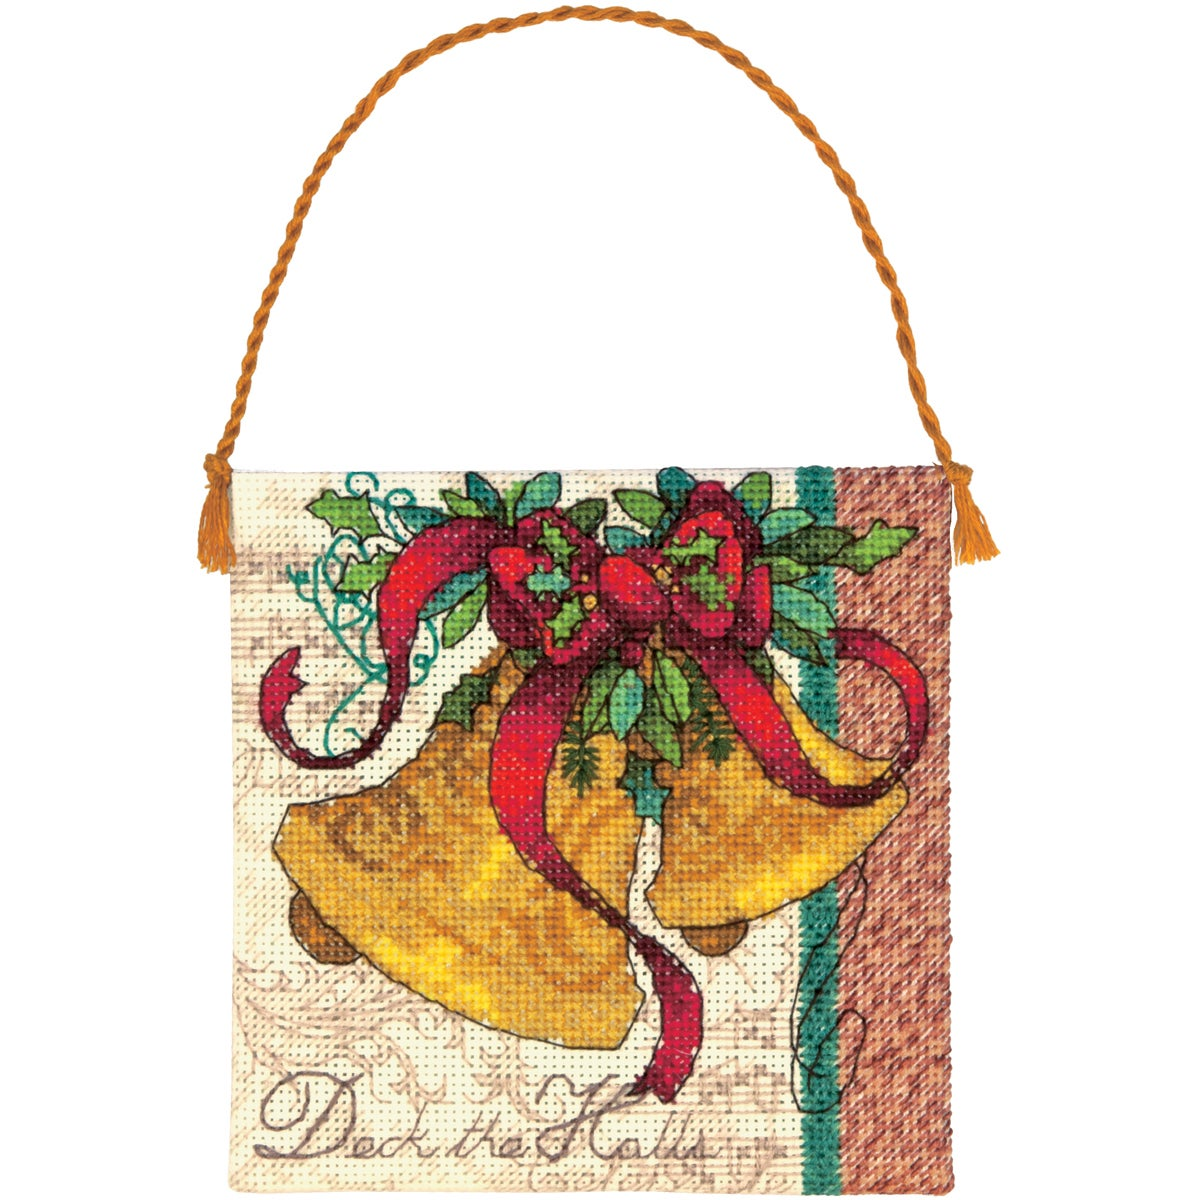 "Gold Collection Petites Bells Ornament Counted Cross Stitch -4.25""x4.25"" 18 Count"